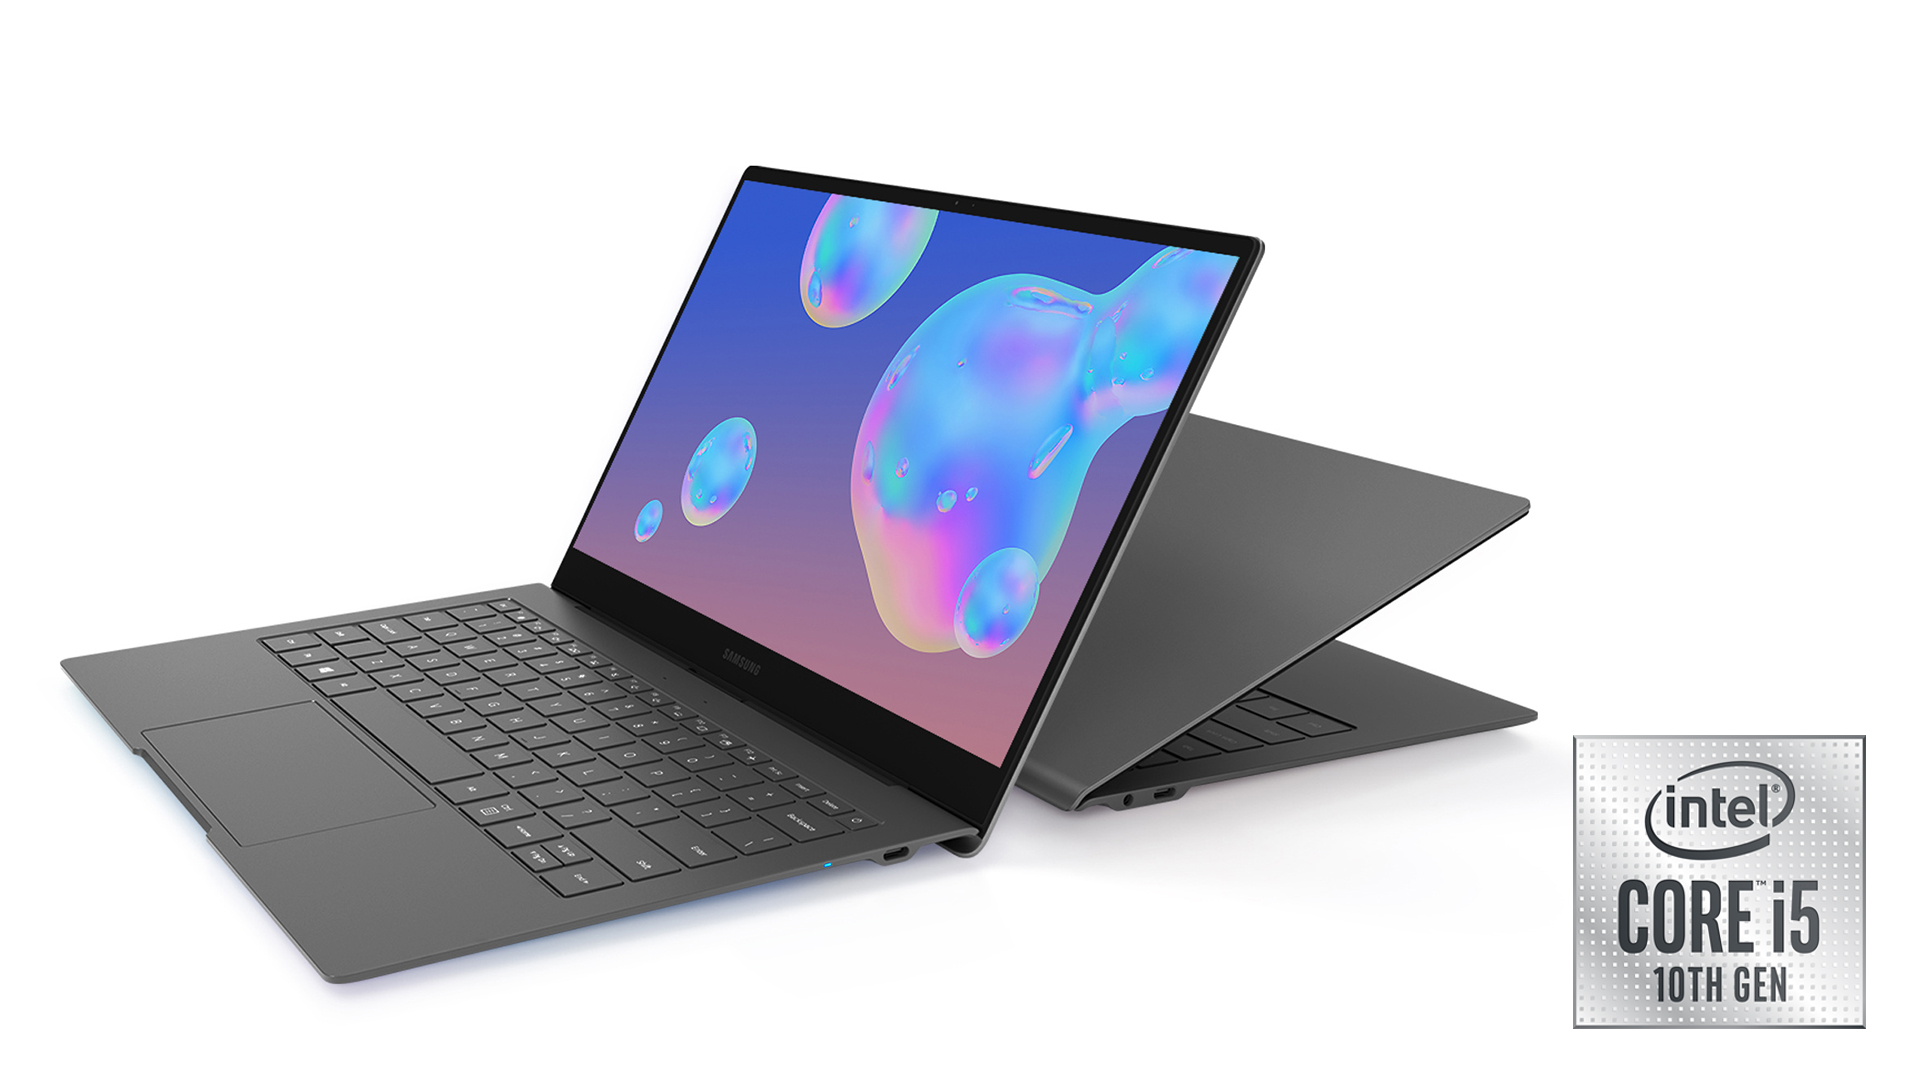 Claim a free pair of £129 AKG Y500 Wireless headphones with the Samsung Galaxy Book S from Currys thumbnail